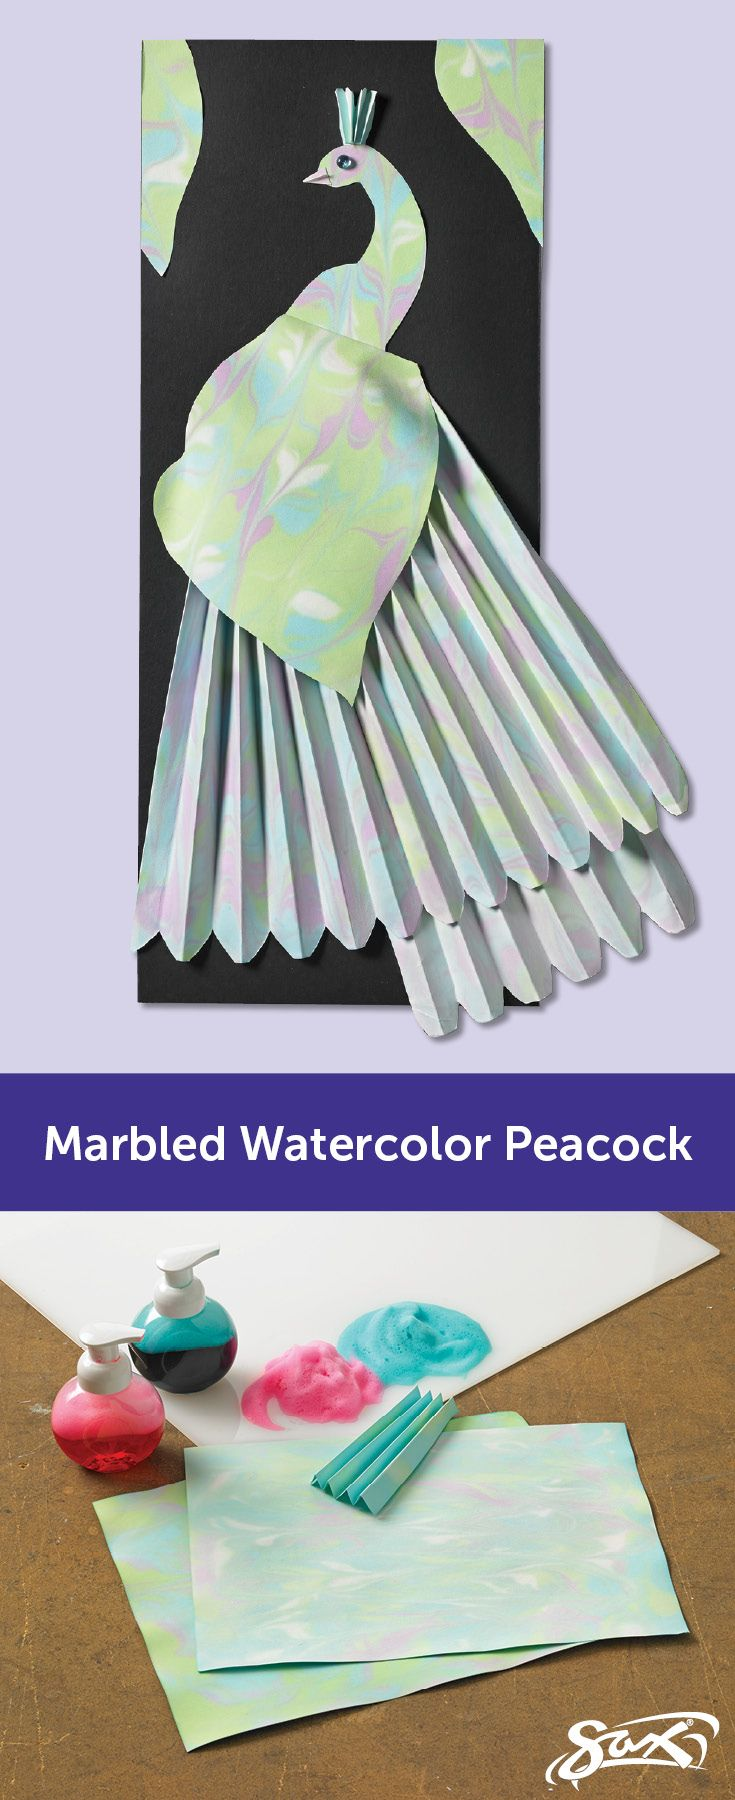 Create and use marbled watercolor paper to create your own peacock through paper folding and manipulation. Lesson plan includes objectives, correlations to National Core Arts Standards, grade levels and  complete directions and art supplies list. Created by our Sax Art Consultants.